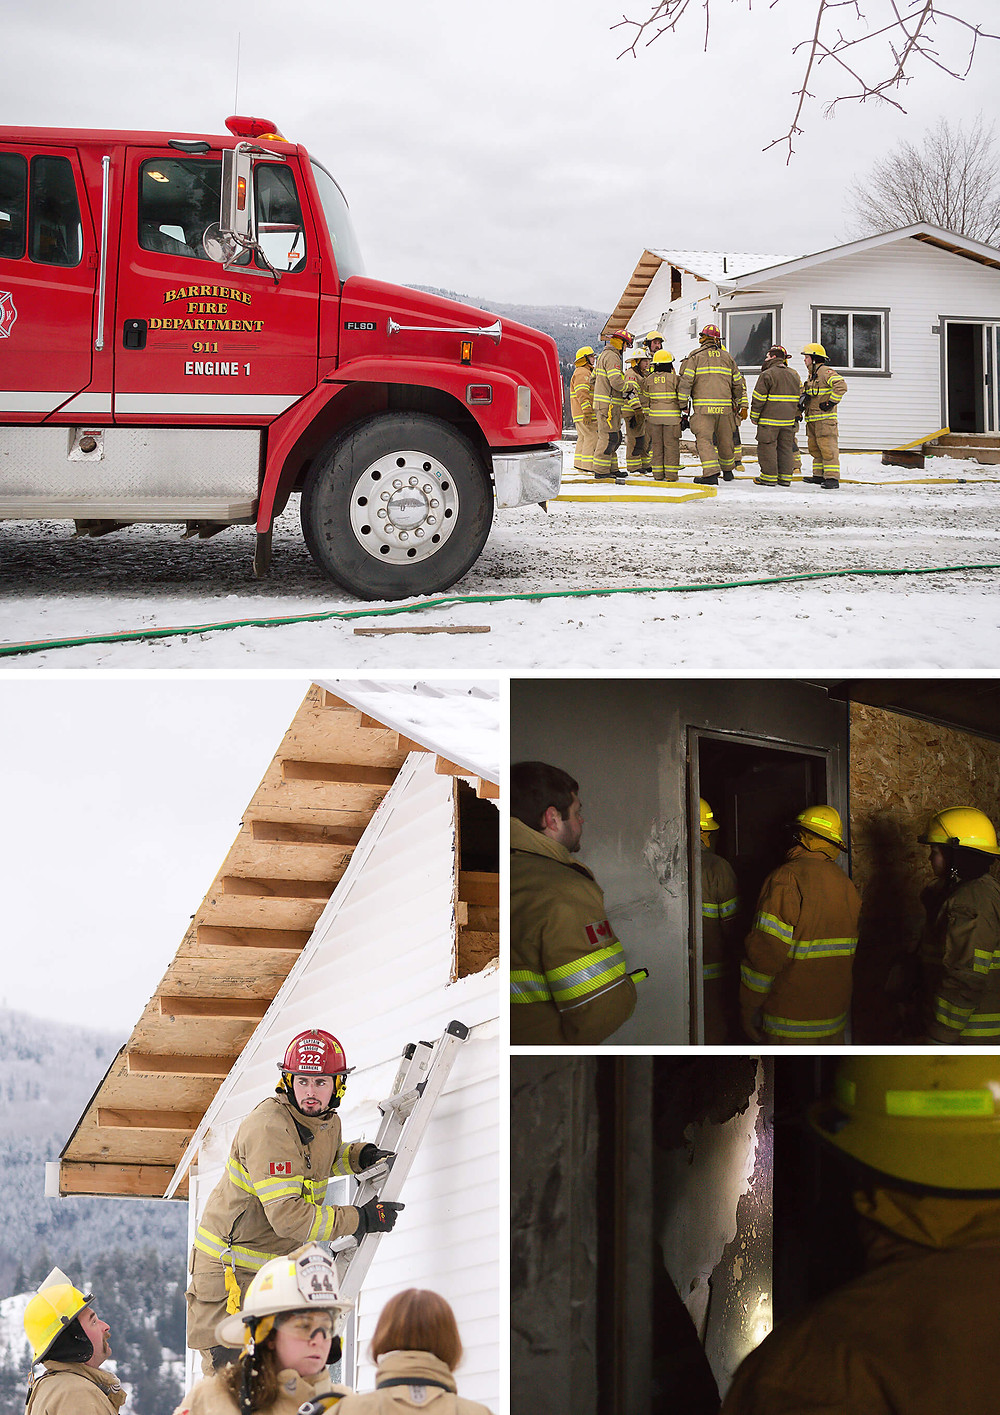 Barriere Fire Department training day